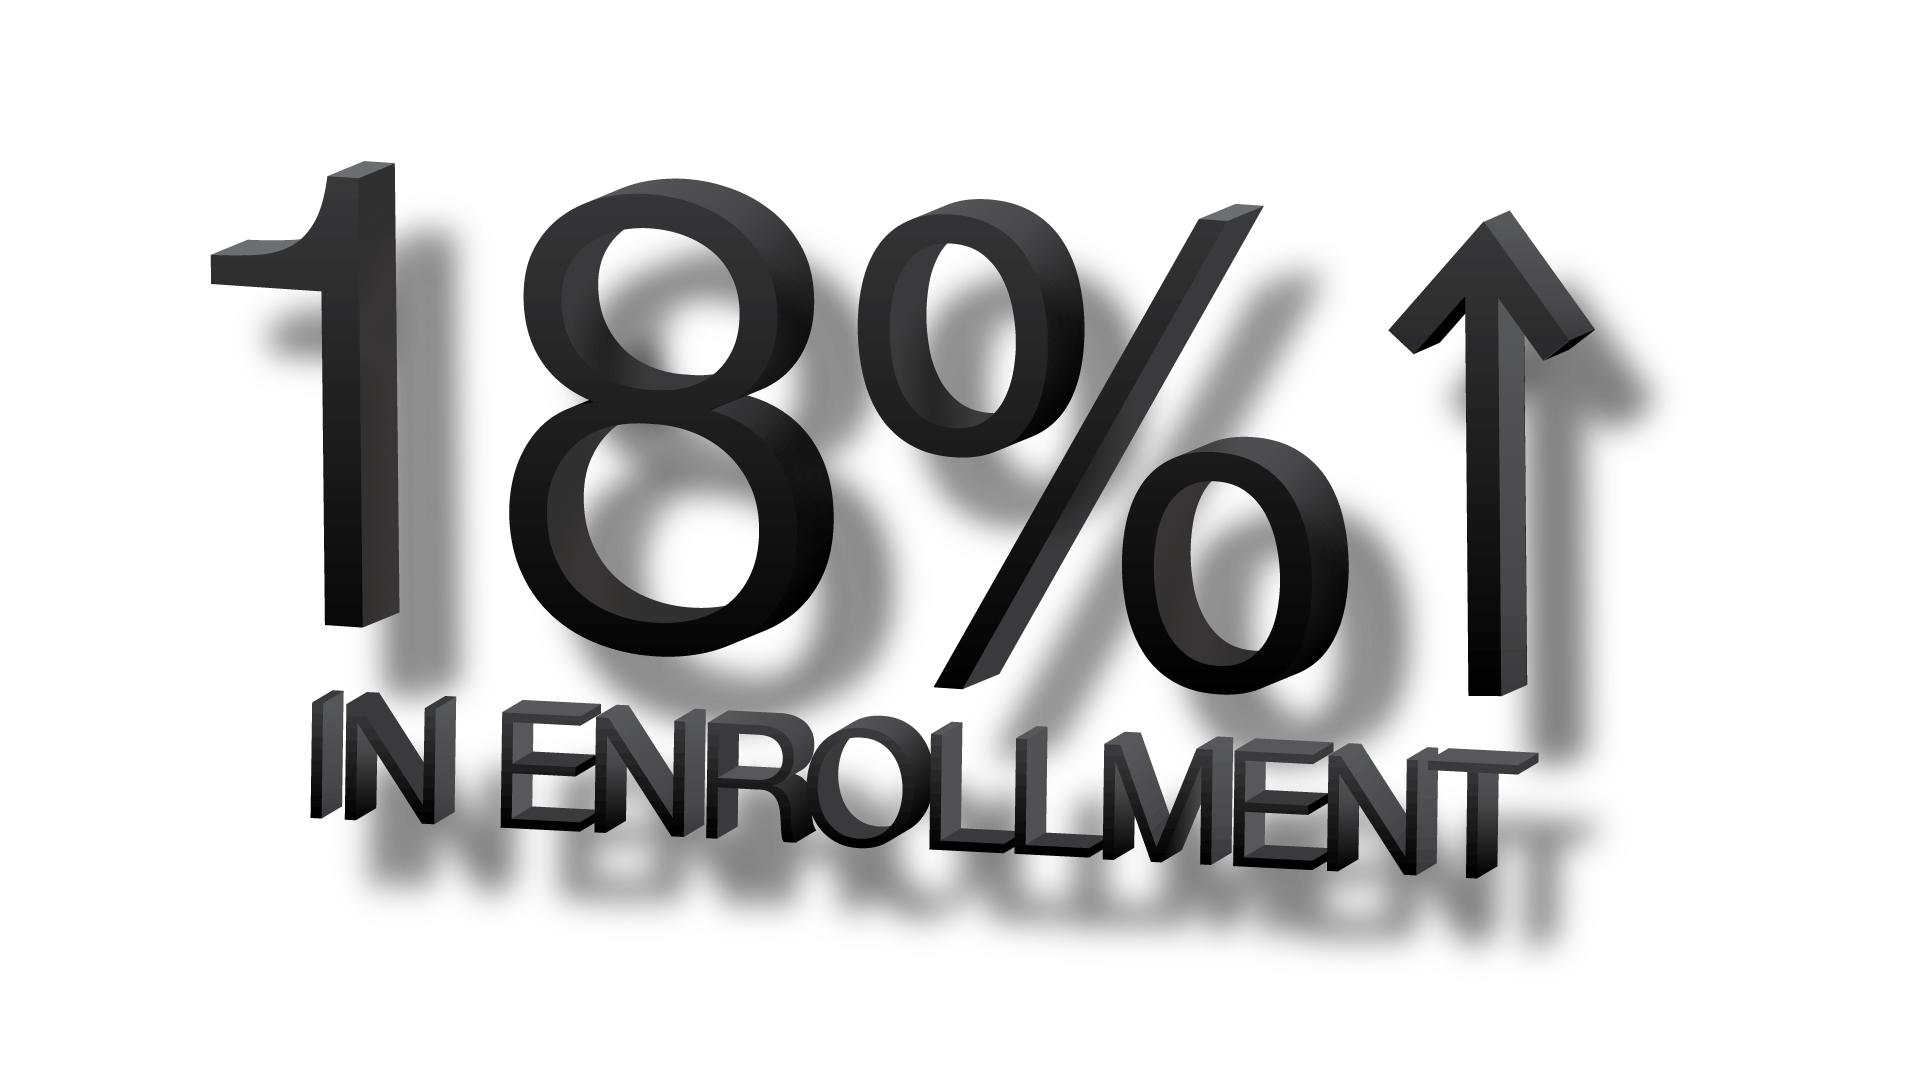 INCREASE IN ENROLLMENT FOR THE DIOCESE OF GRAND RAPIDS